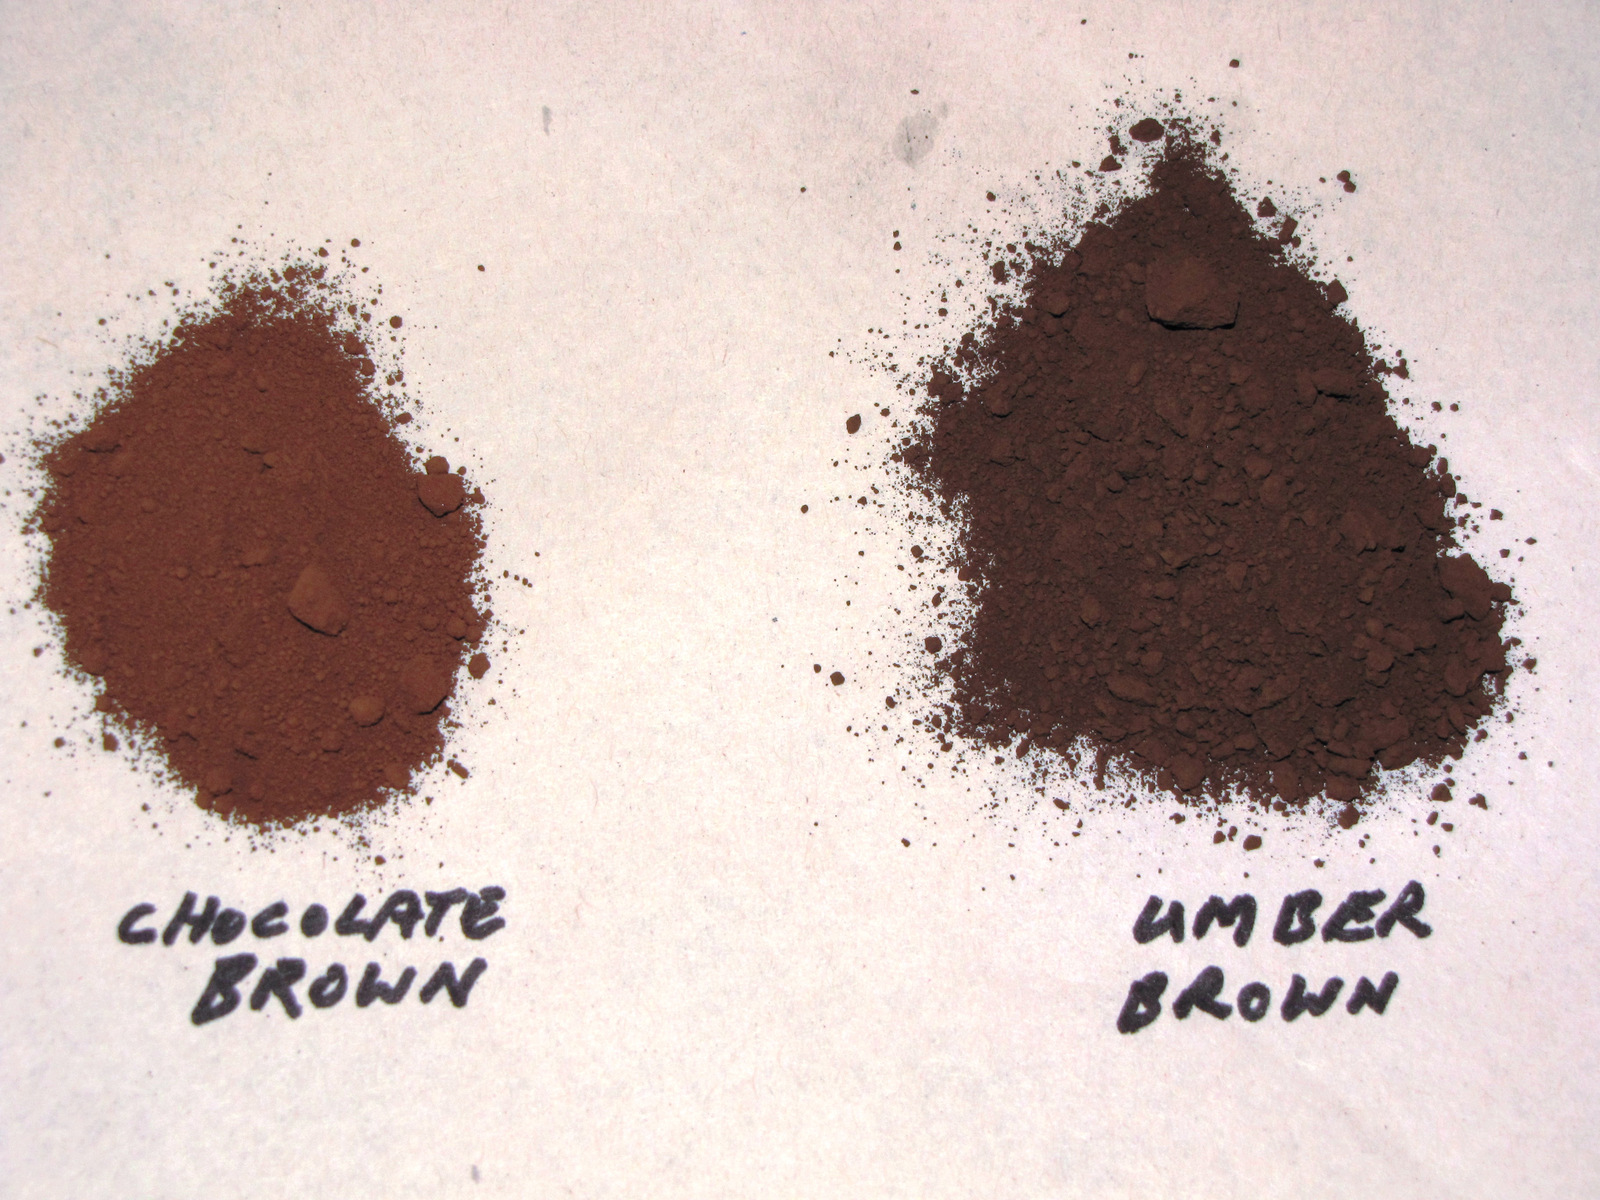 1 LB. UMBER BROWN POWDER TO COLOR CONCRETE, CEMENT, PLASTER, GROUT OR BRICKS